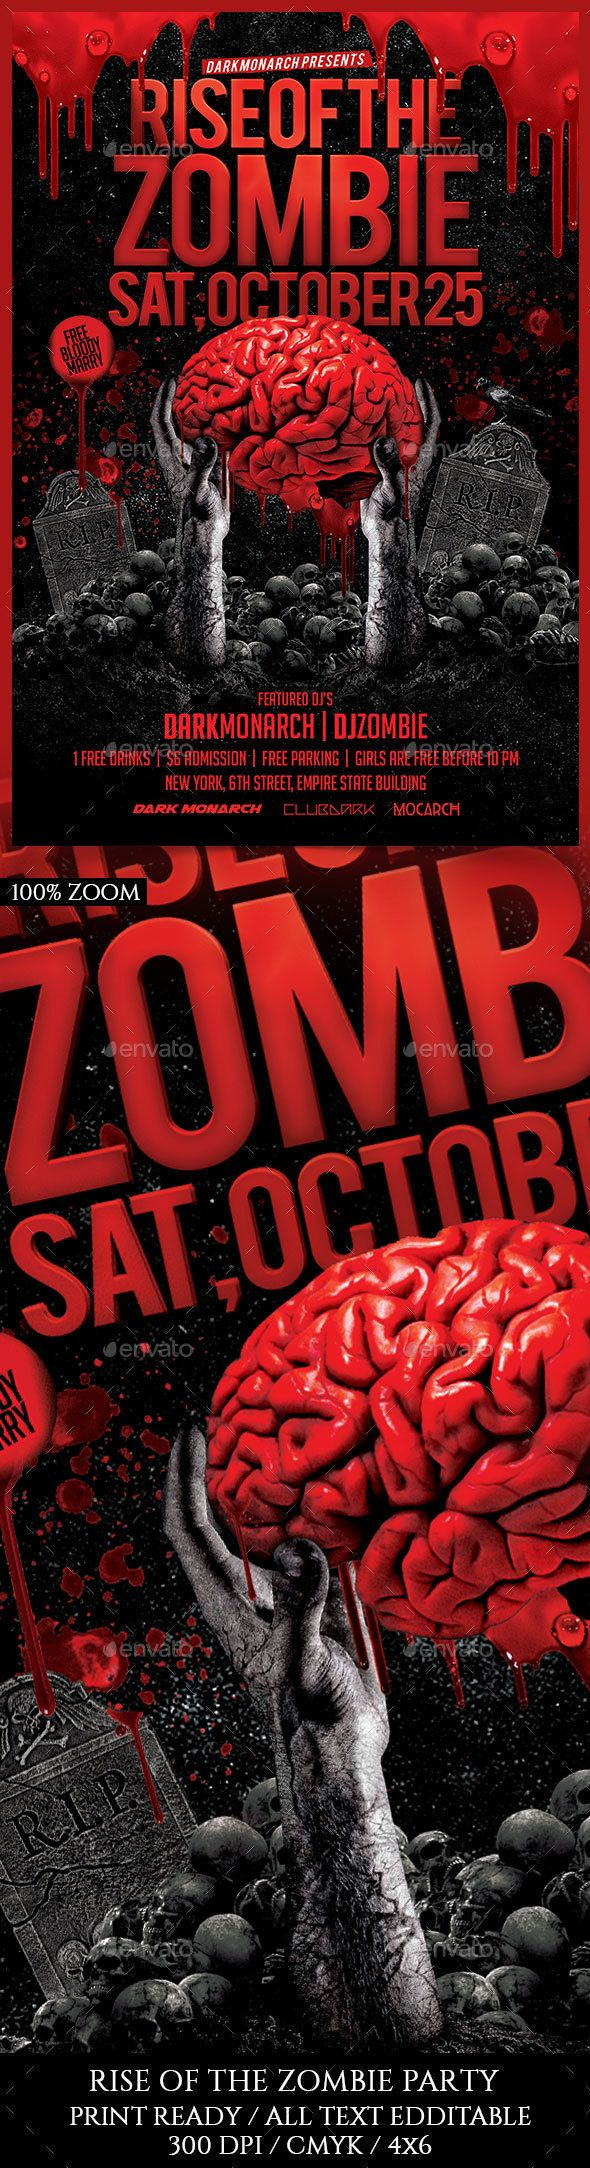 Rise Of The Zombie Party by darkmonarch Rise Of The Zombie Party Flyer Template PSD Super Easy to edit text and Elements Resolution: 300dpi CMYK color Well organized in f